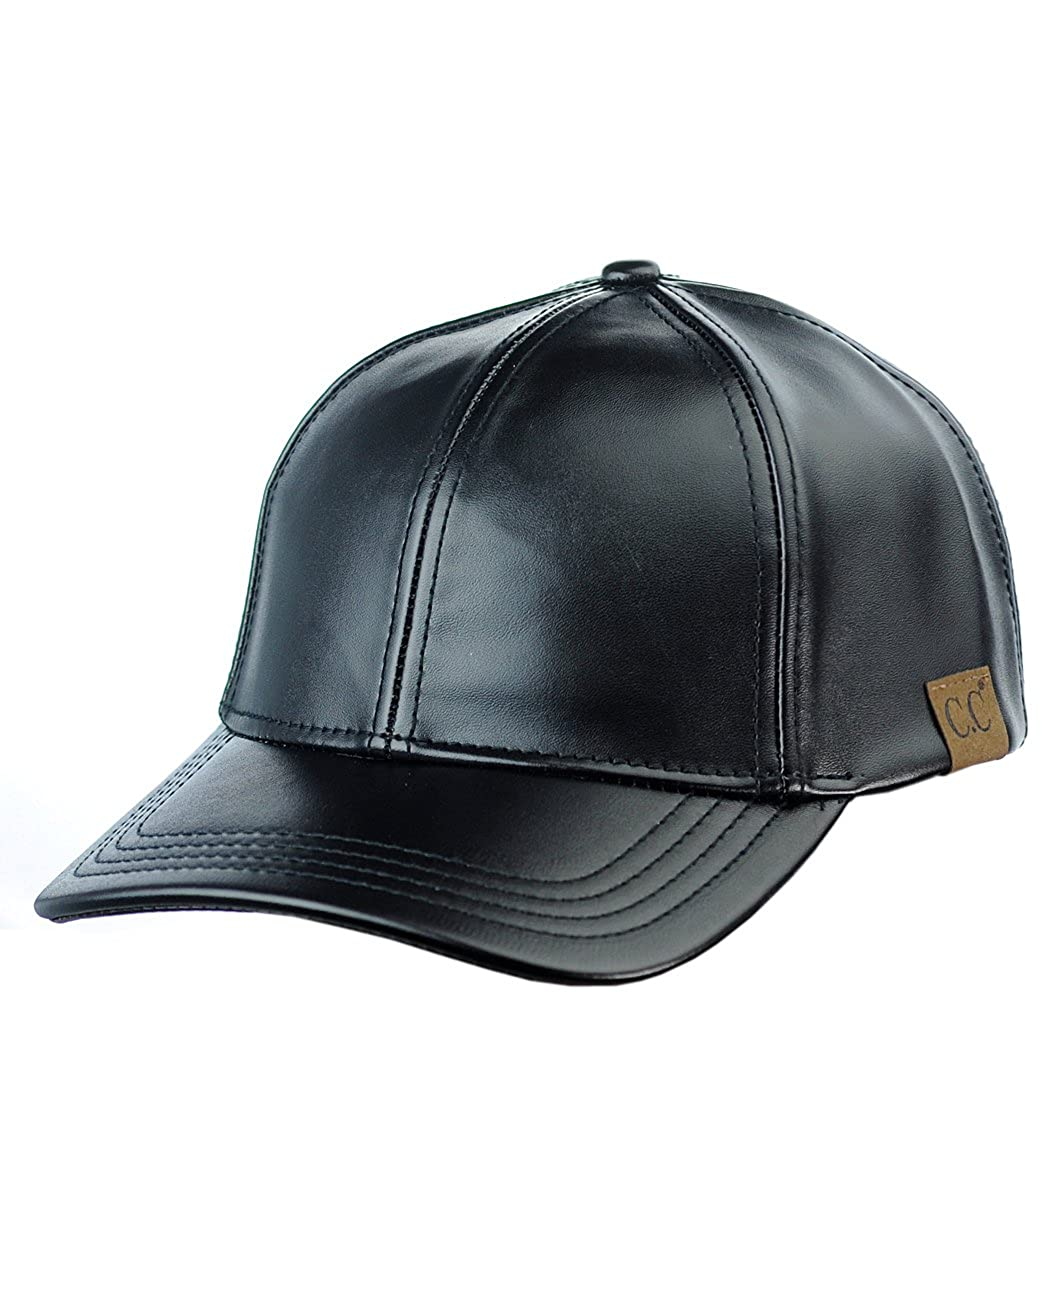 NYfashion101 Unisex Adjustable PU Leather Precurved Bill Baseball Cap Hat